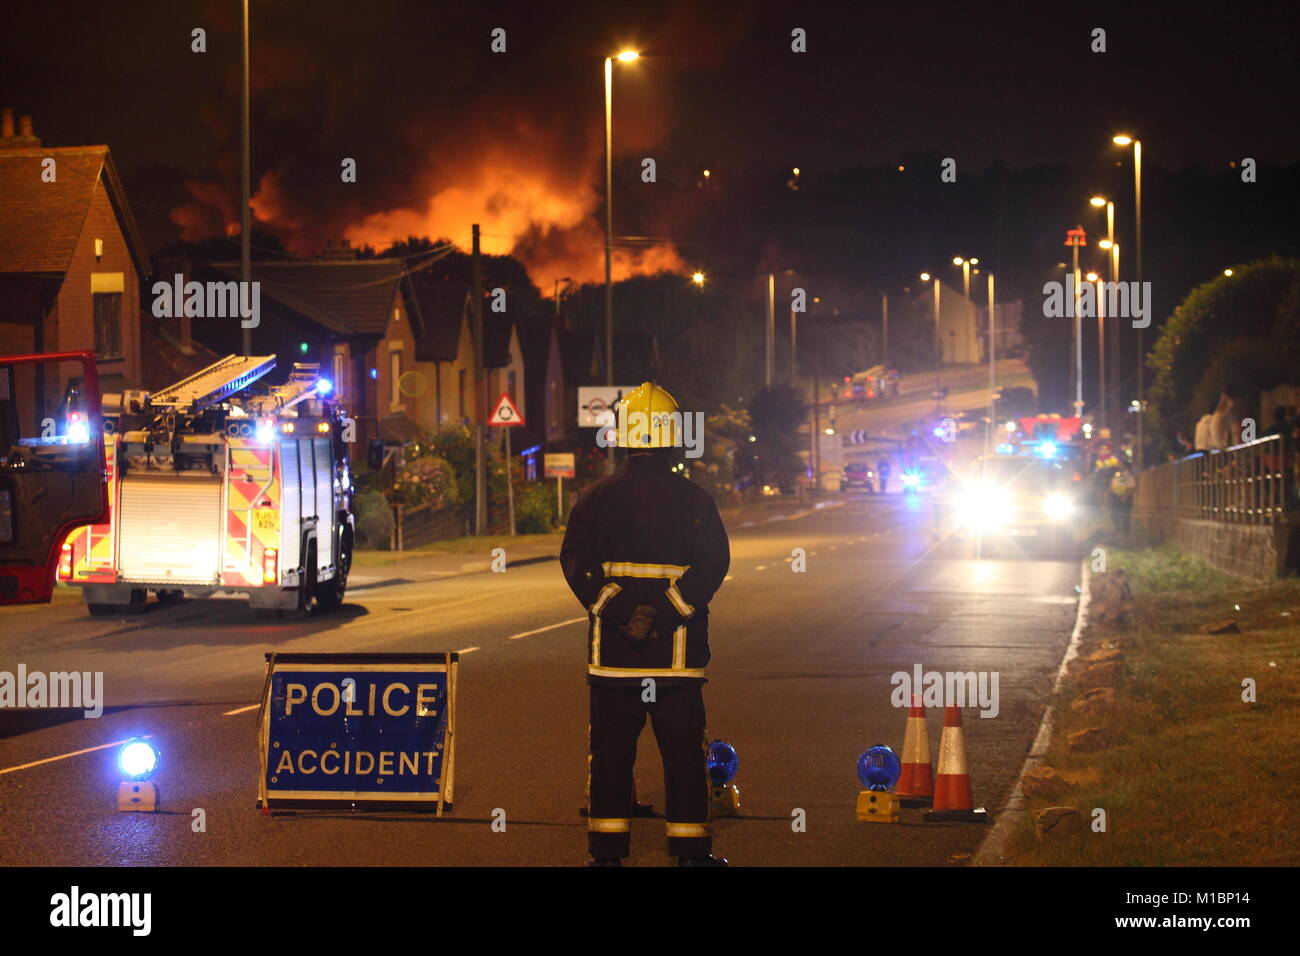 Recycling Plant Fire In Garforth Stock Photo